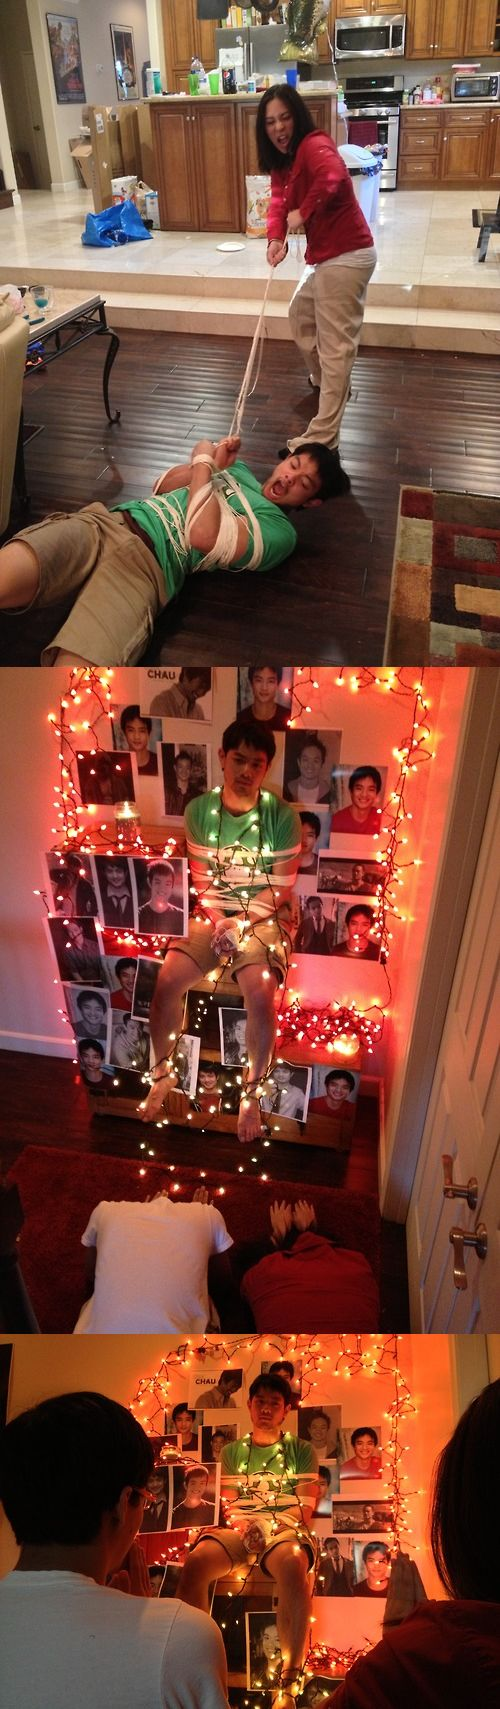 Cas' GISHWHES 2013 Osric Chau Shrine with bonus Osric Chau <--- WOW!!! You know there are bonus points being awarded for that one!!